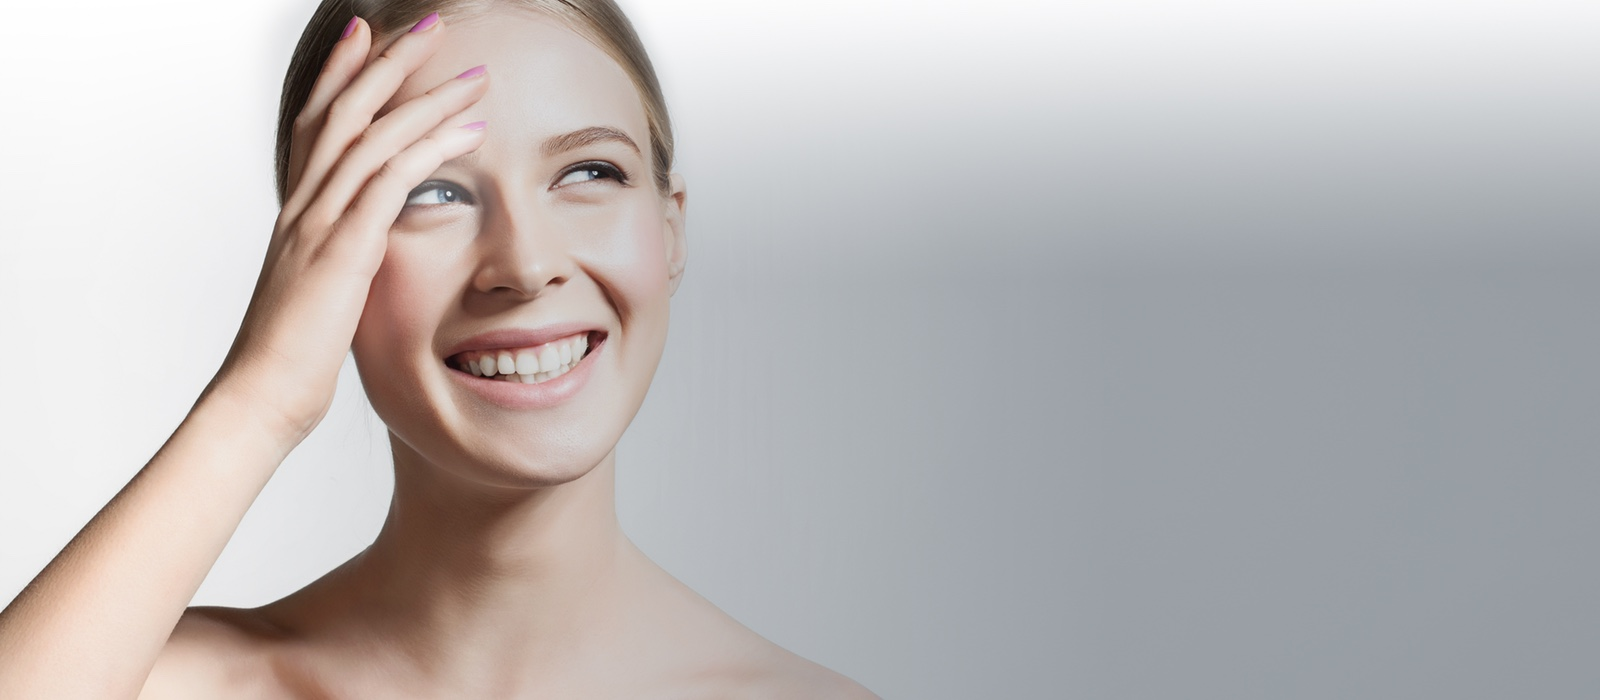 Your Skin Type and What It Means for Your Skin Health